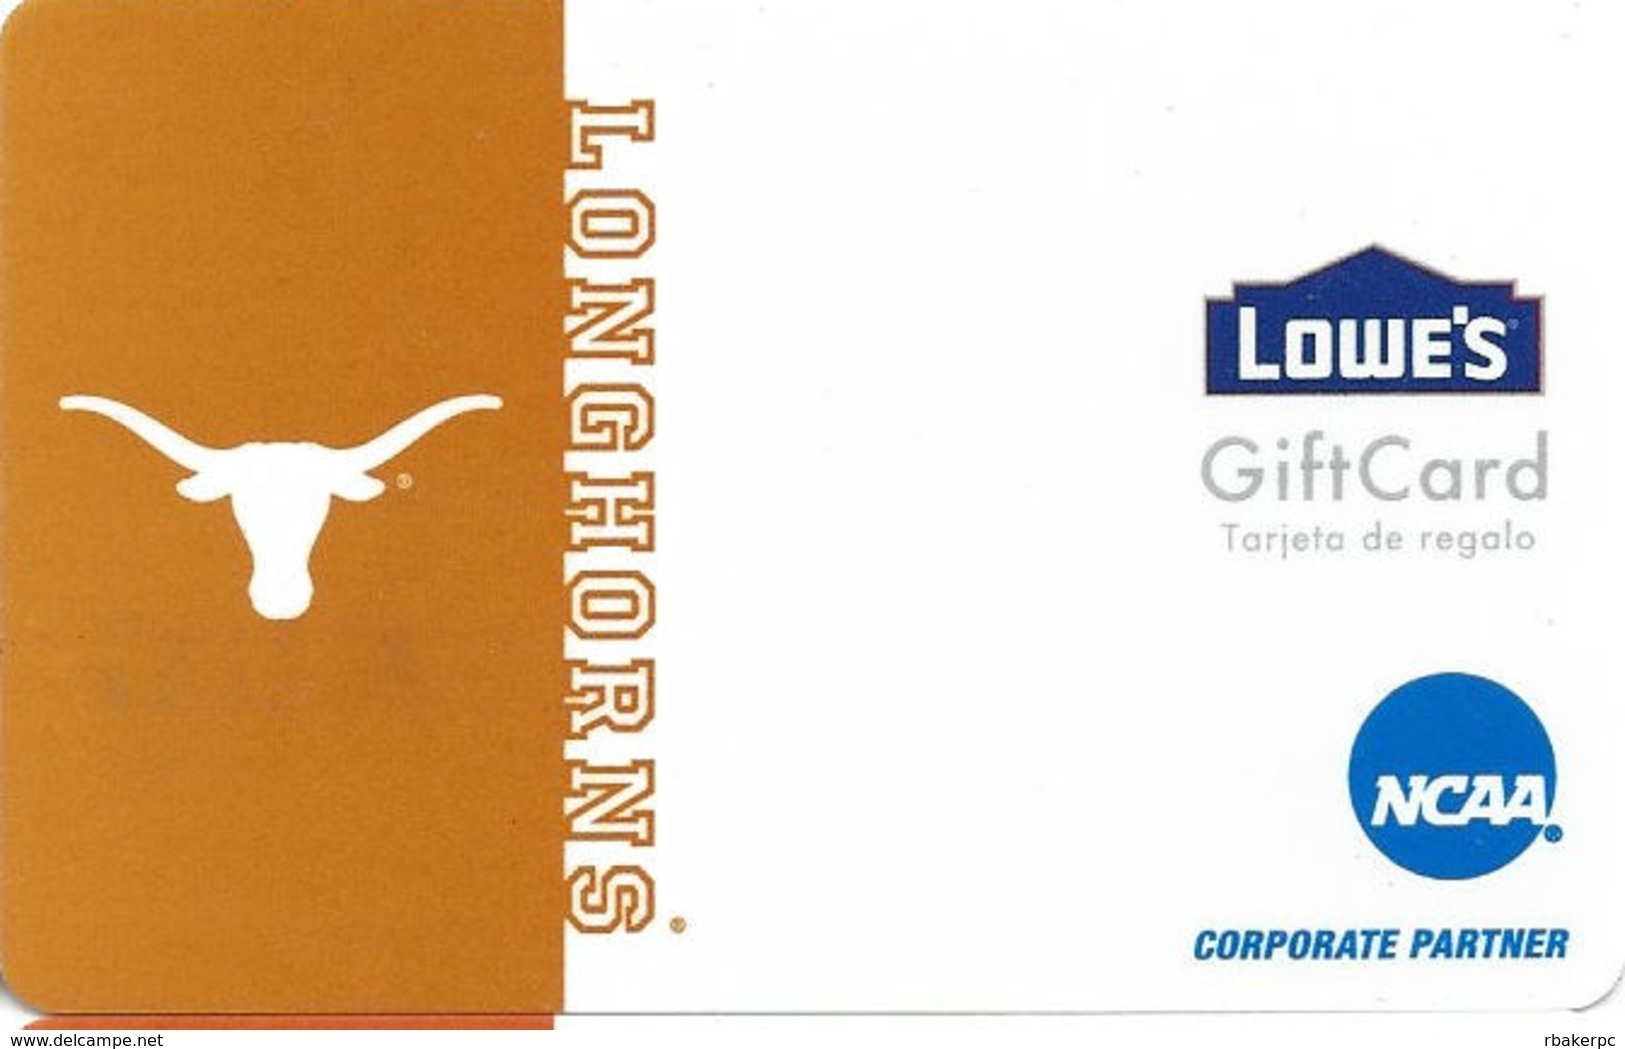 Lowes NCAA Gift Card - Texas Longhorns - Gift Cards